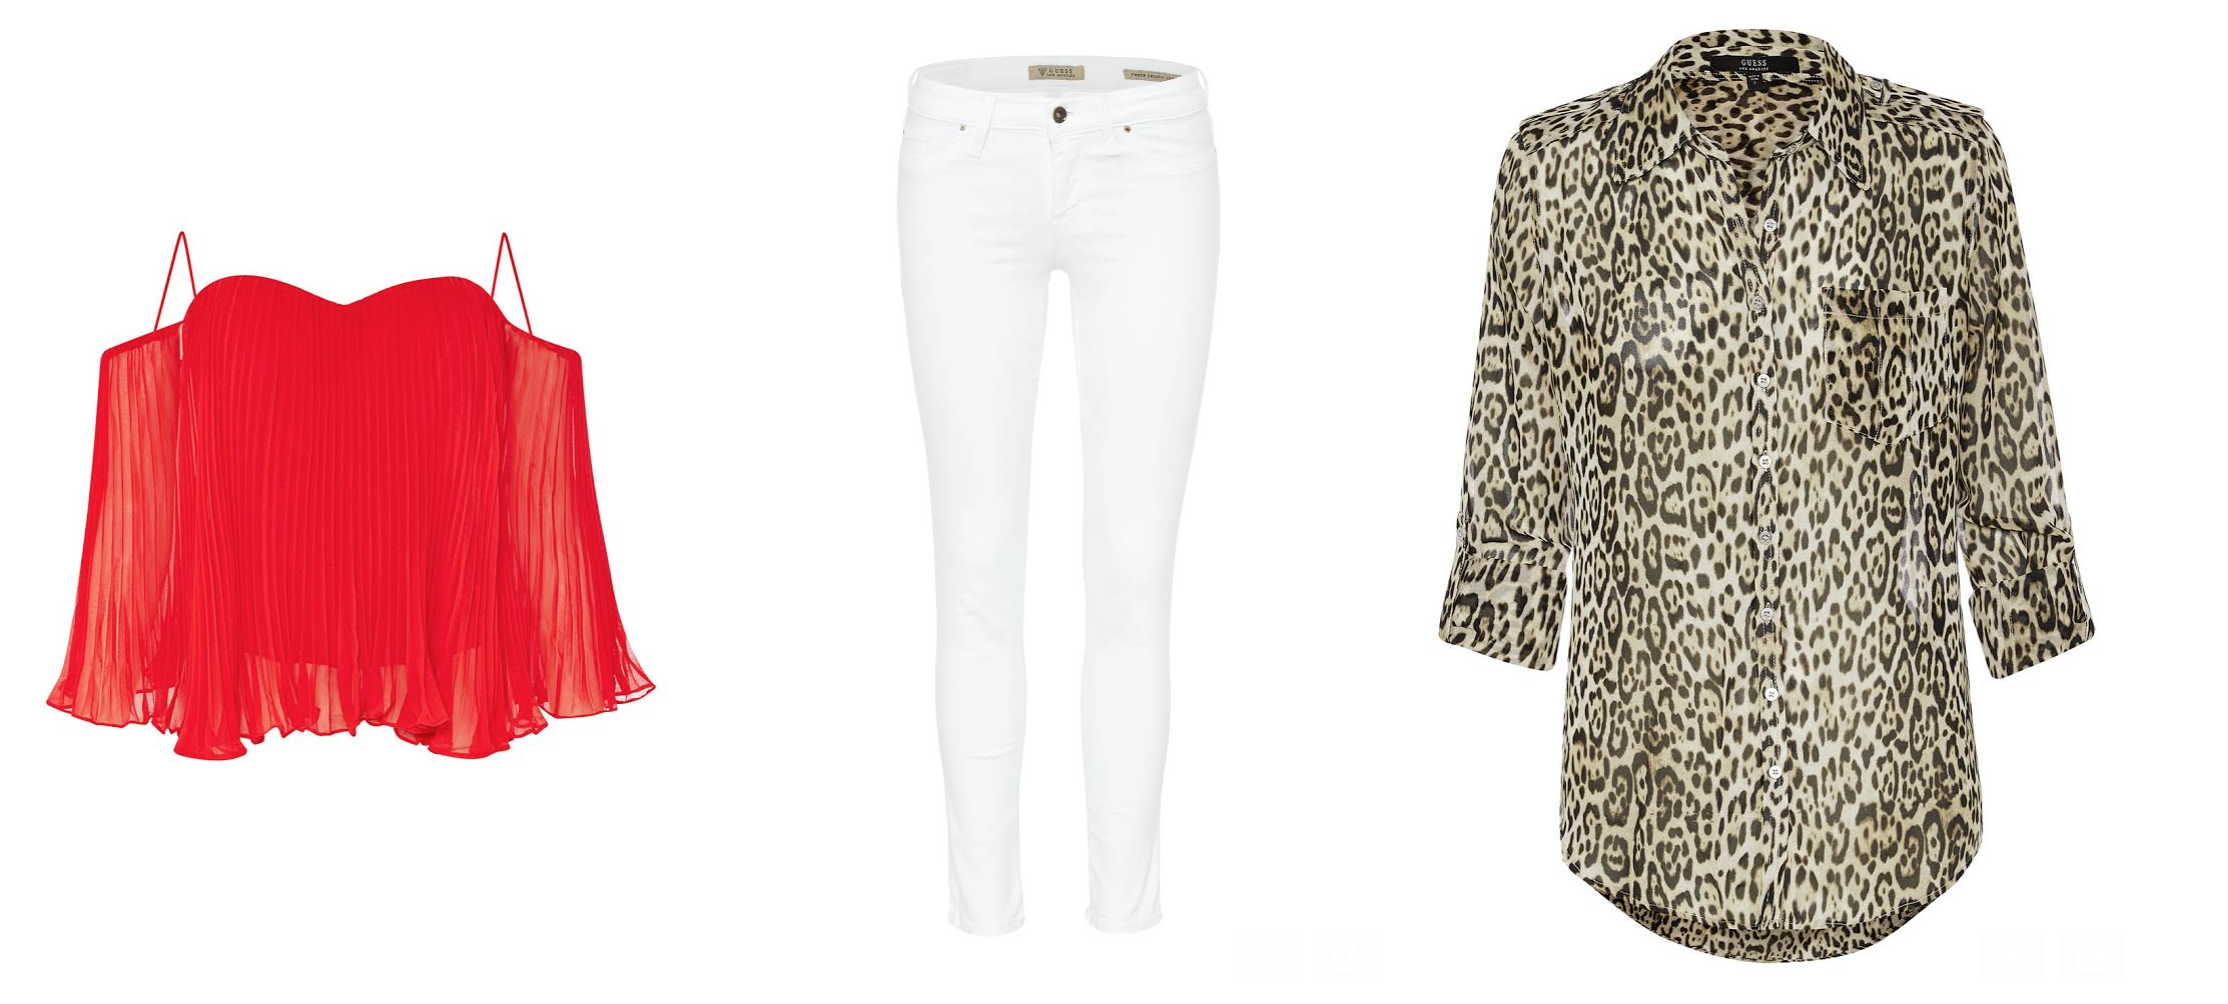 Both tops look AMAZING with their skinny white jeans!